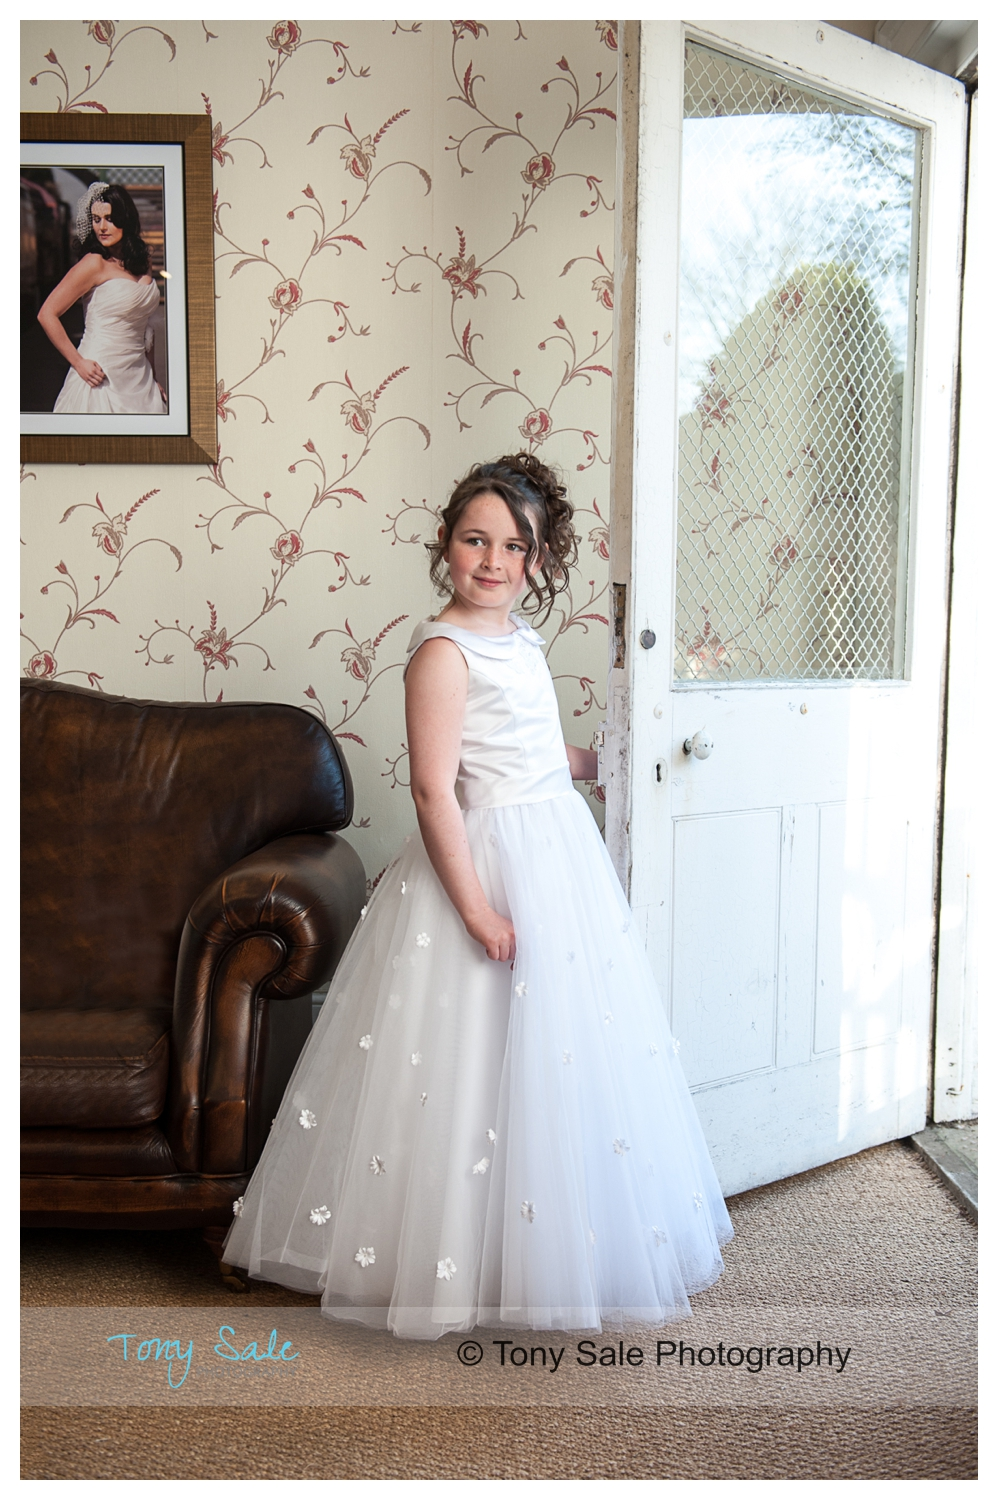 Beautiful First Communion Dresses Halstead_Tony Sale Photography_12